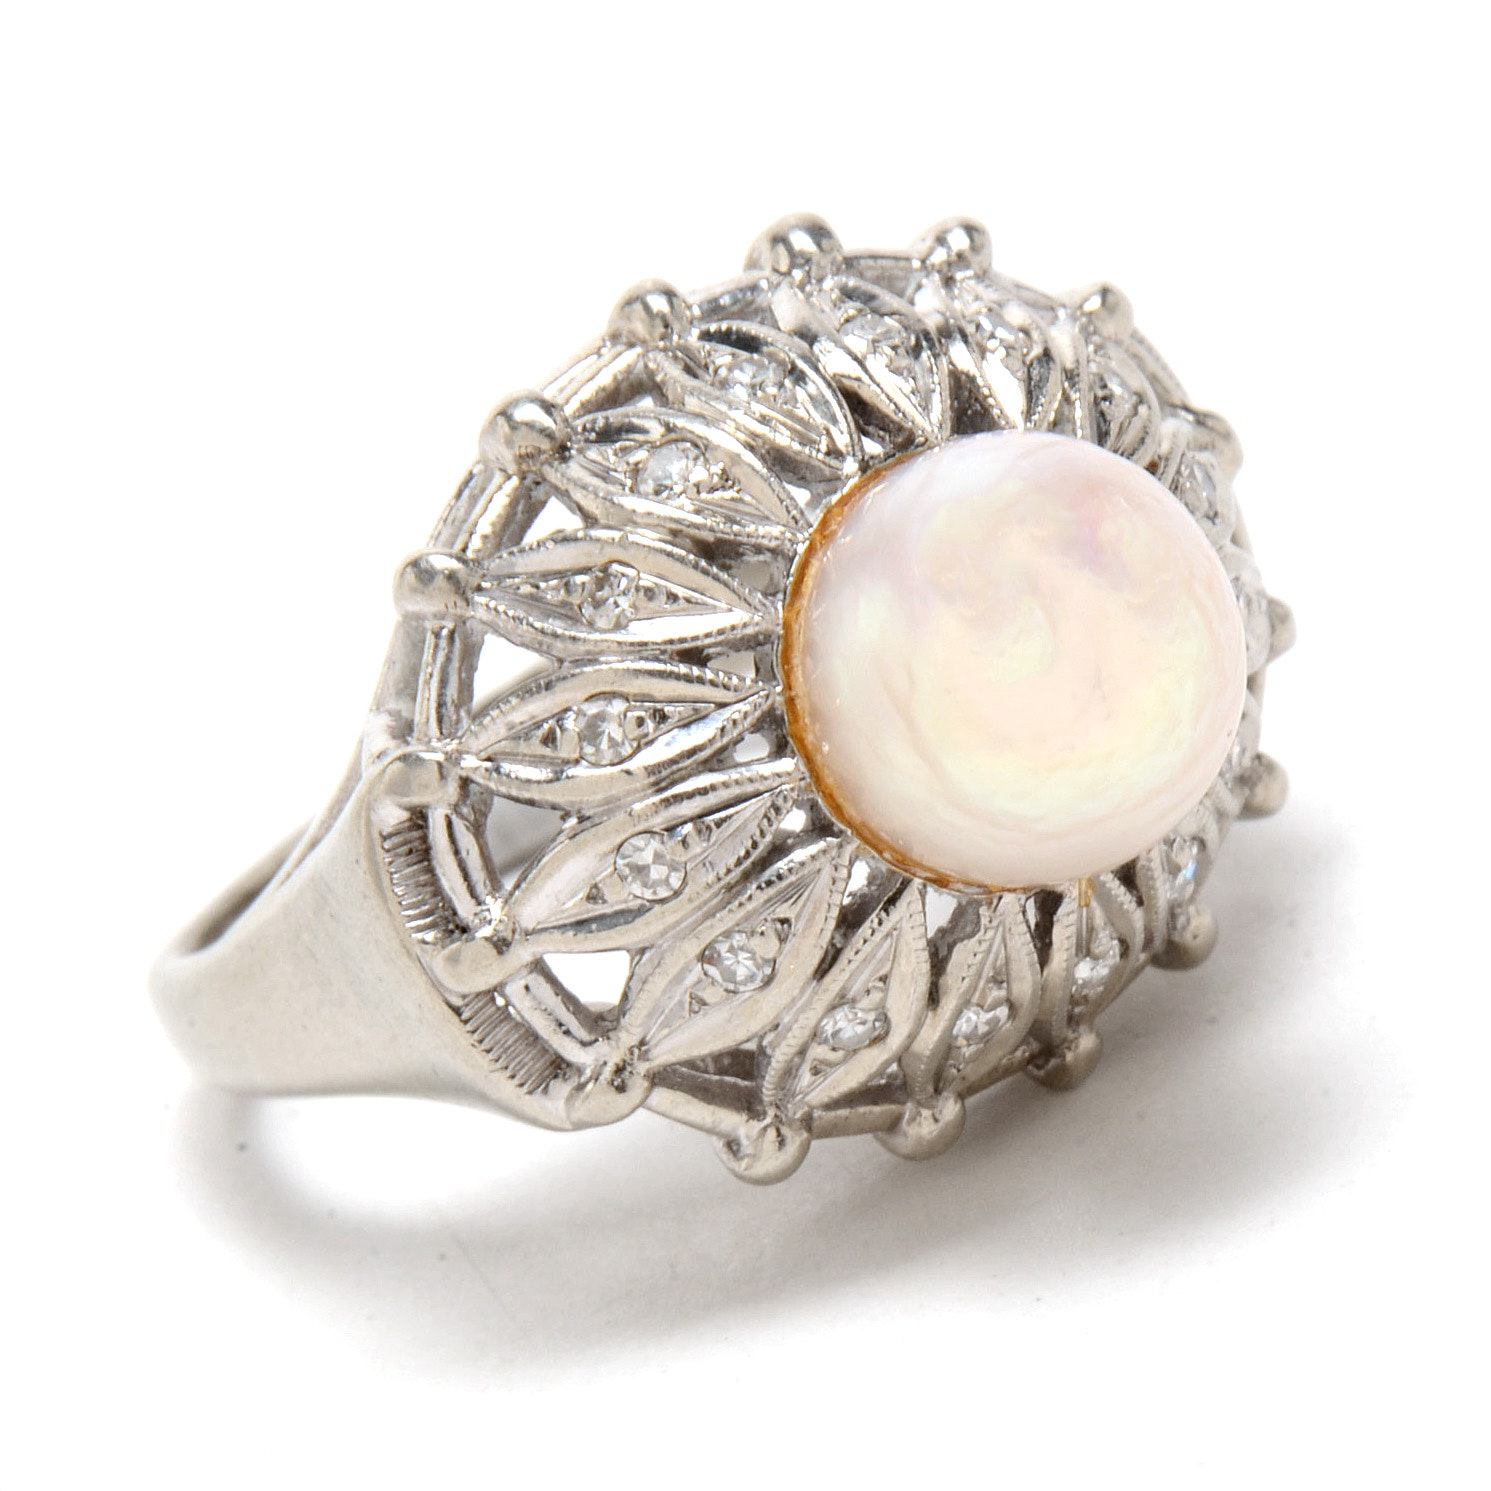 14K White Gold Floral Cultured Pearl Diamond Cocktail Ring